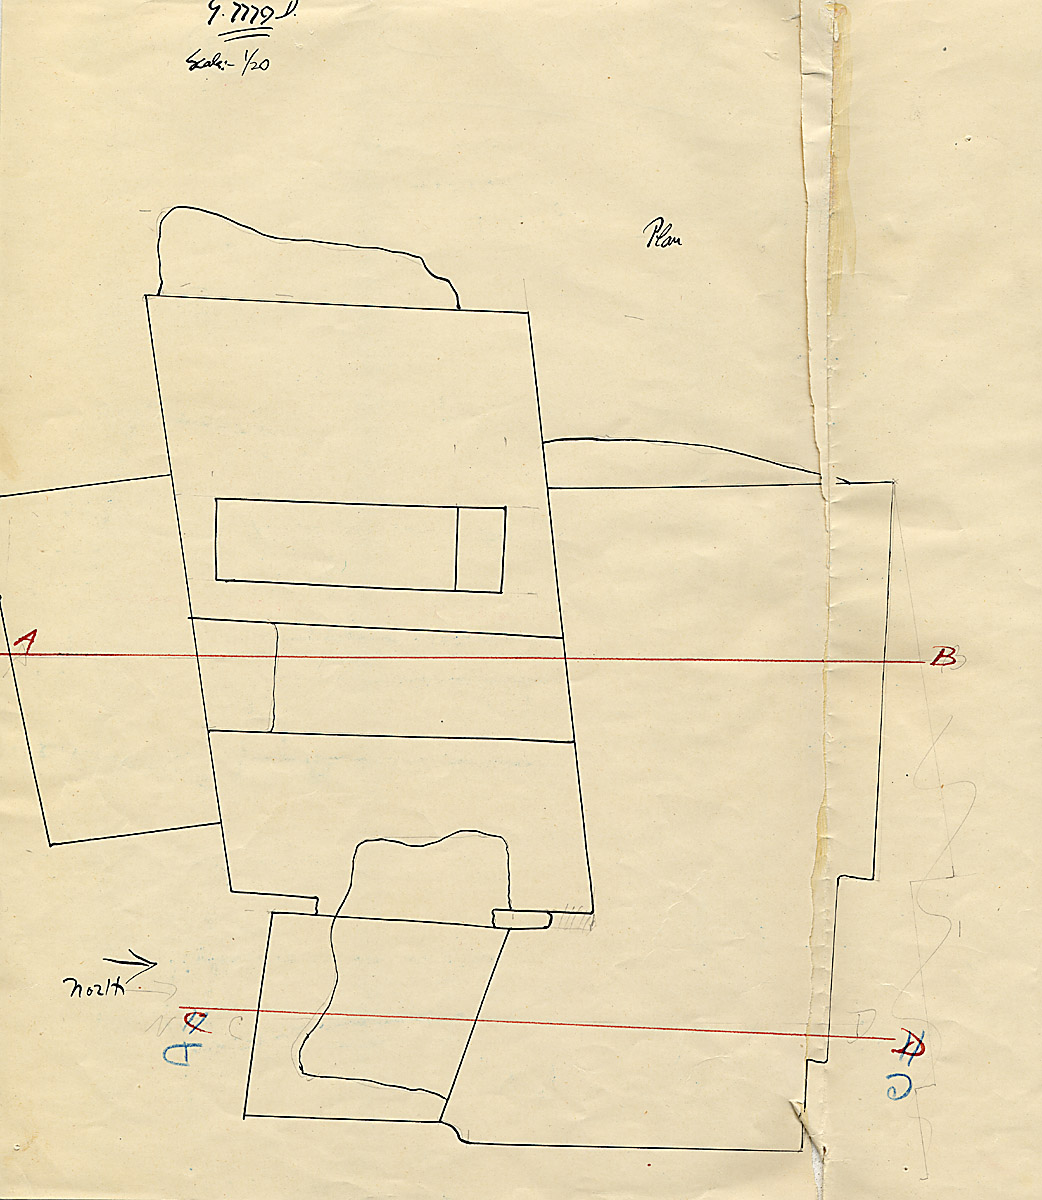 Maps and plans: G 7779, Shaft D